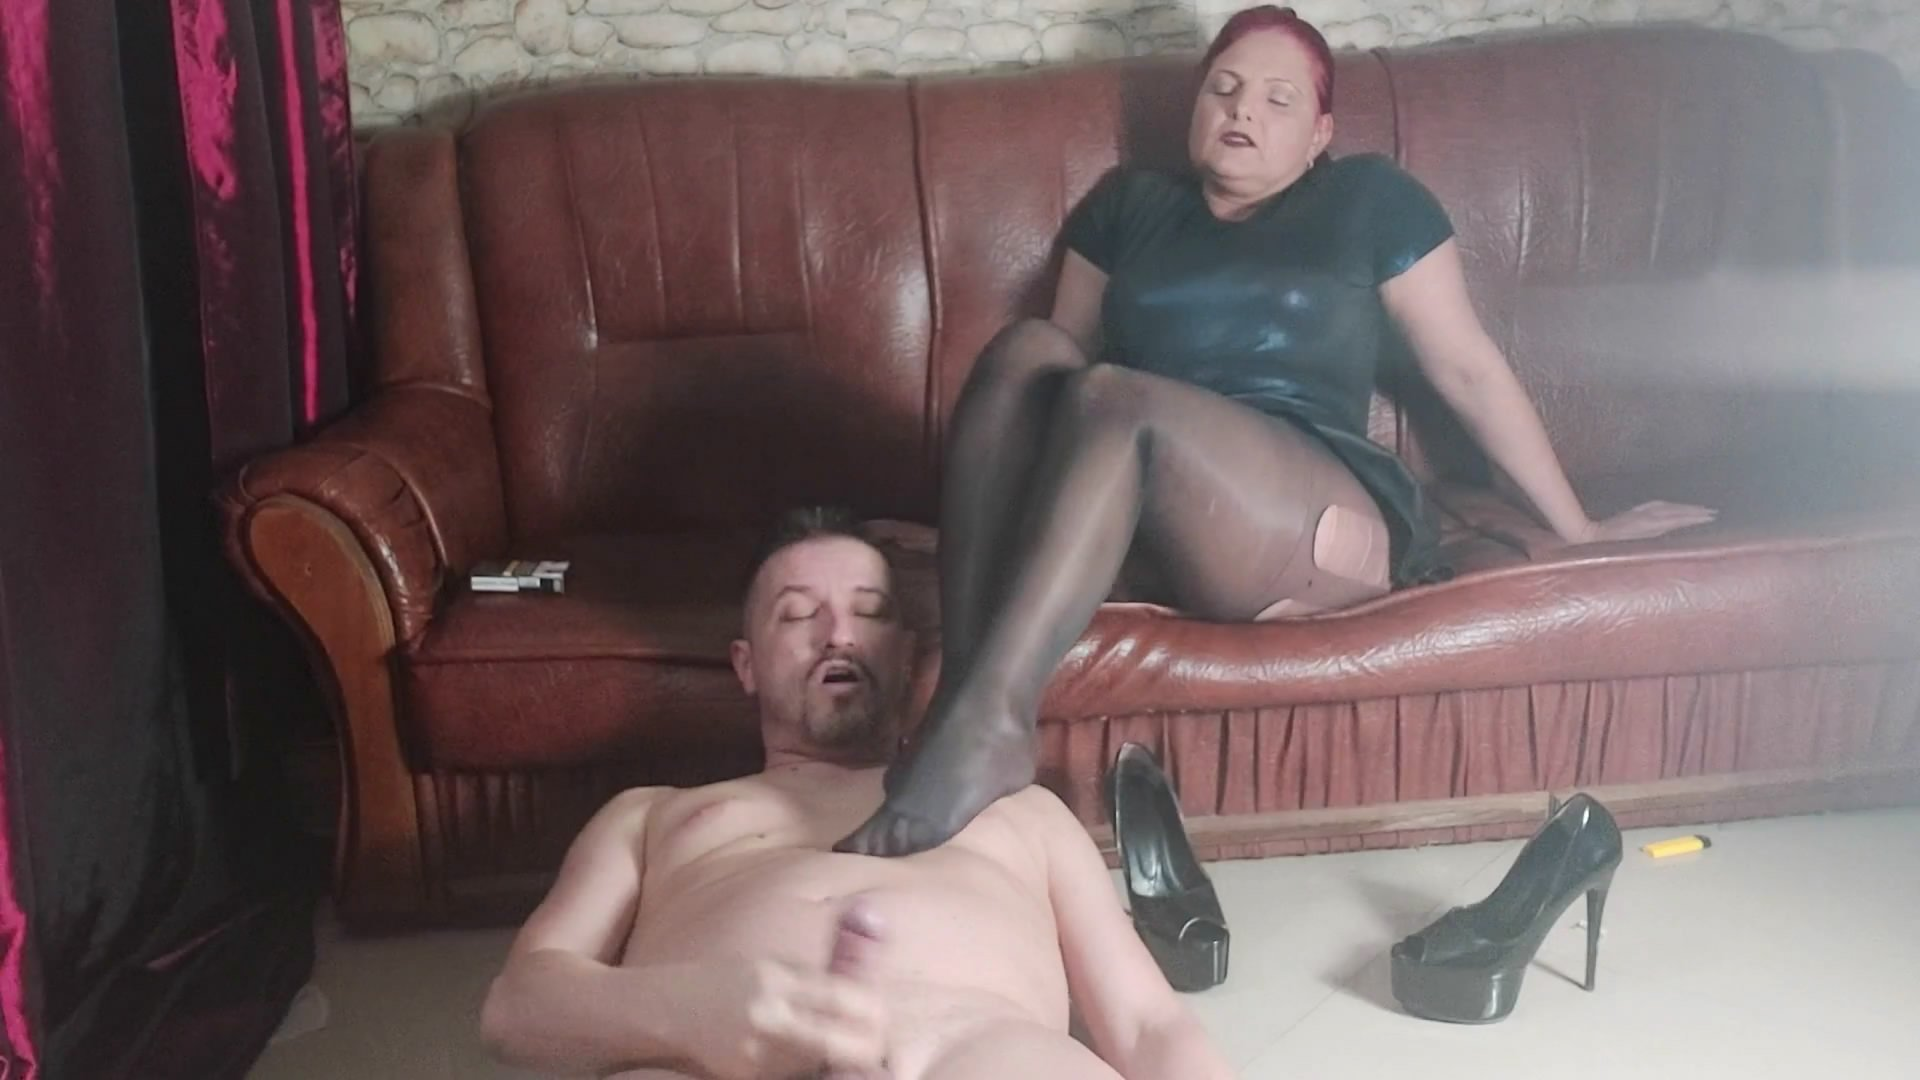 Mistress Andreea pantyhose and full kaviar swallowing starring in video GoddessAndreea ($31.99 ScatShop) –  Groups/Couples